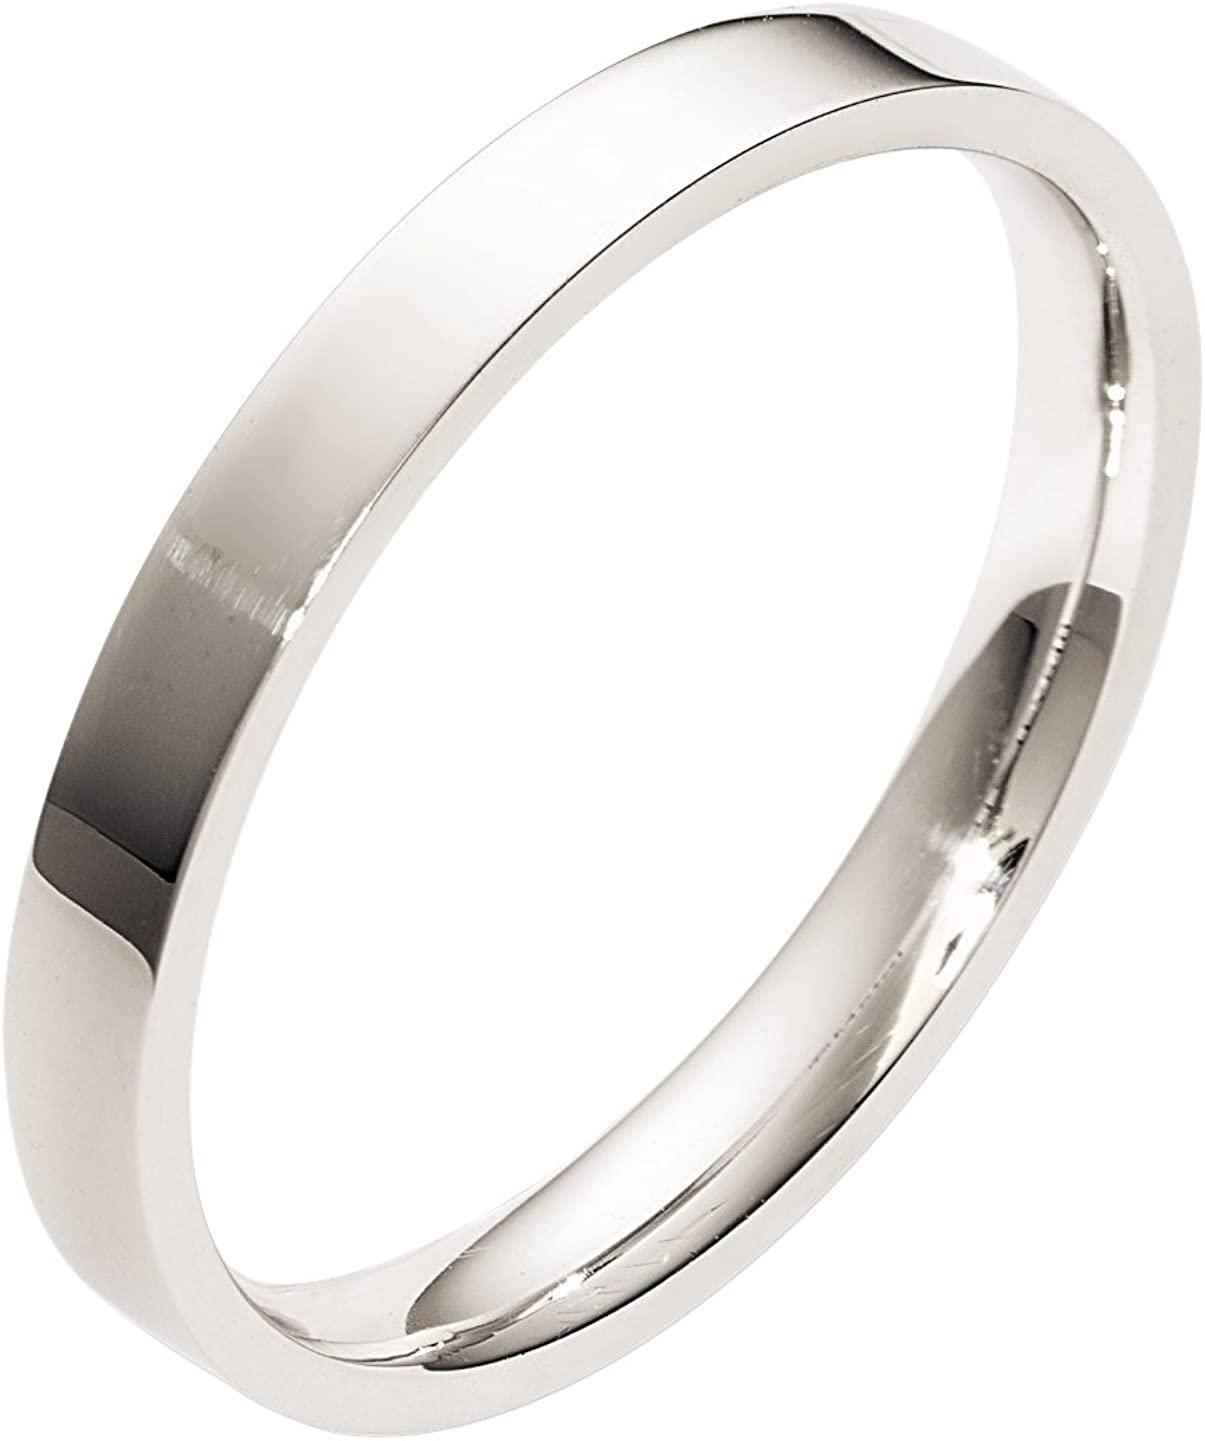 Gembrooke Creations Mens Titanium 7mm Beveled Satin Center Comfort Fit Wedding Band Ring